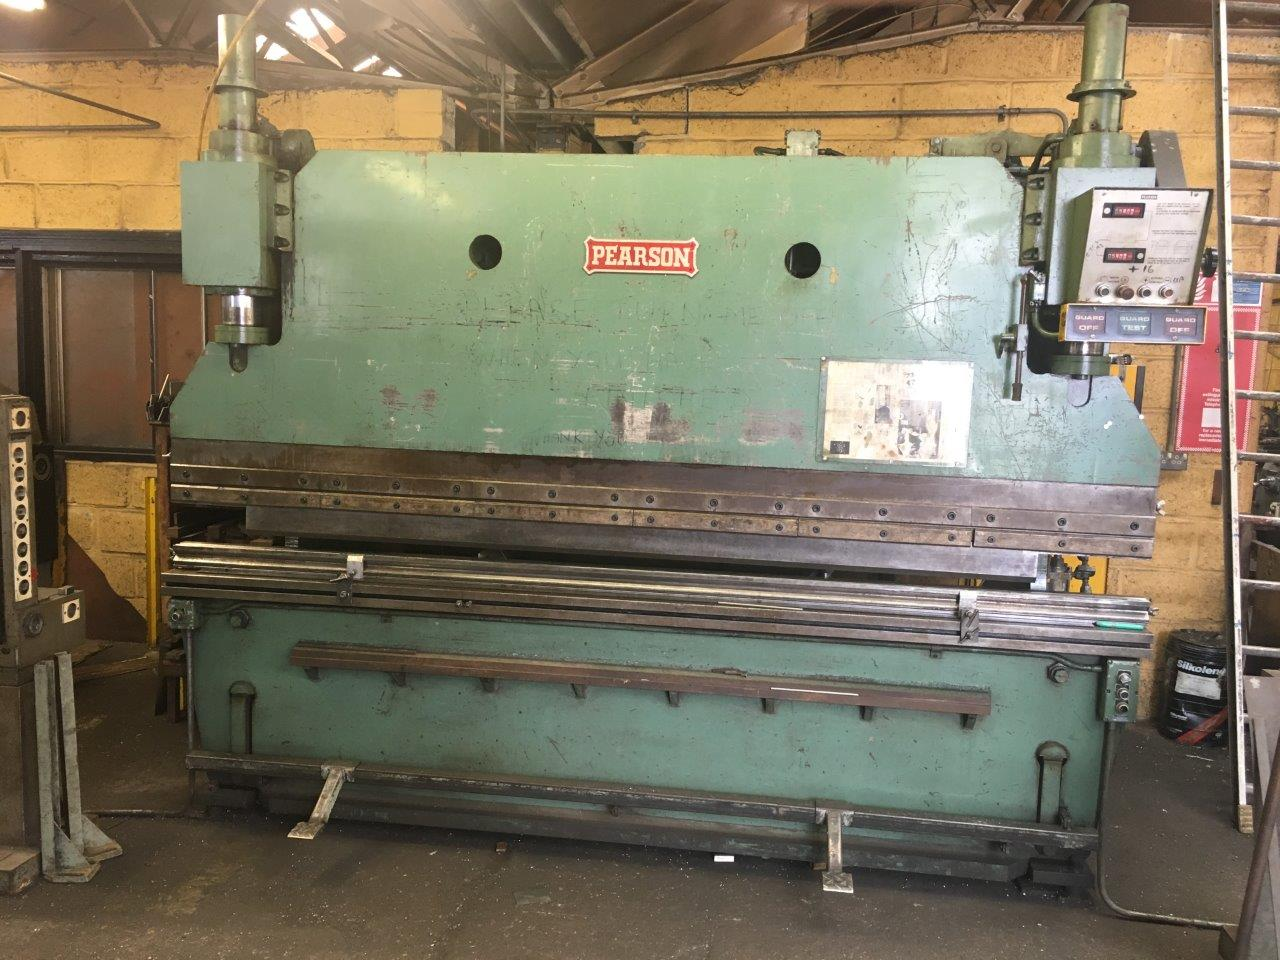 Pearson Press Brake